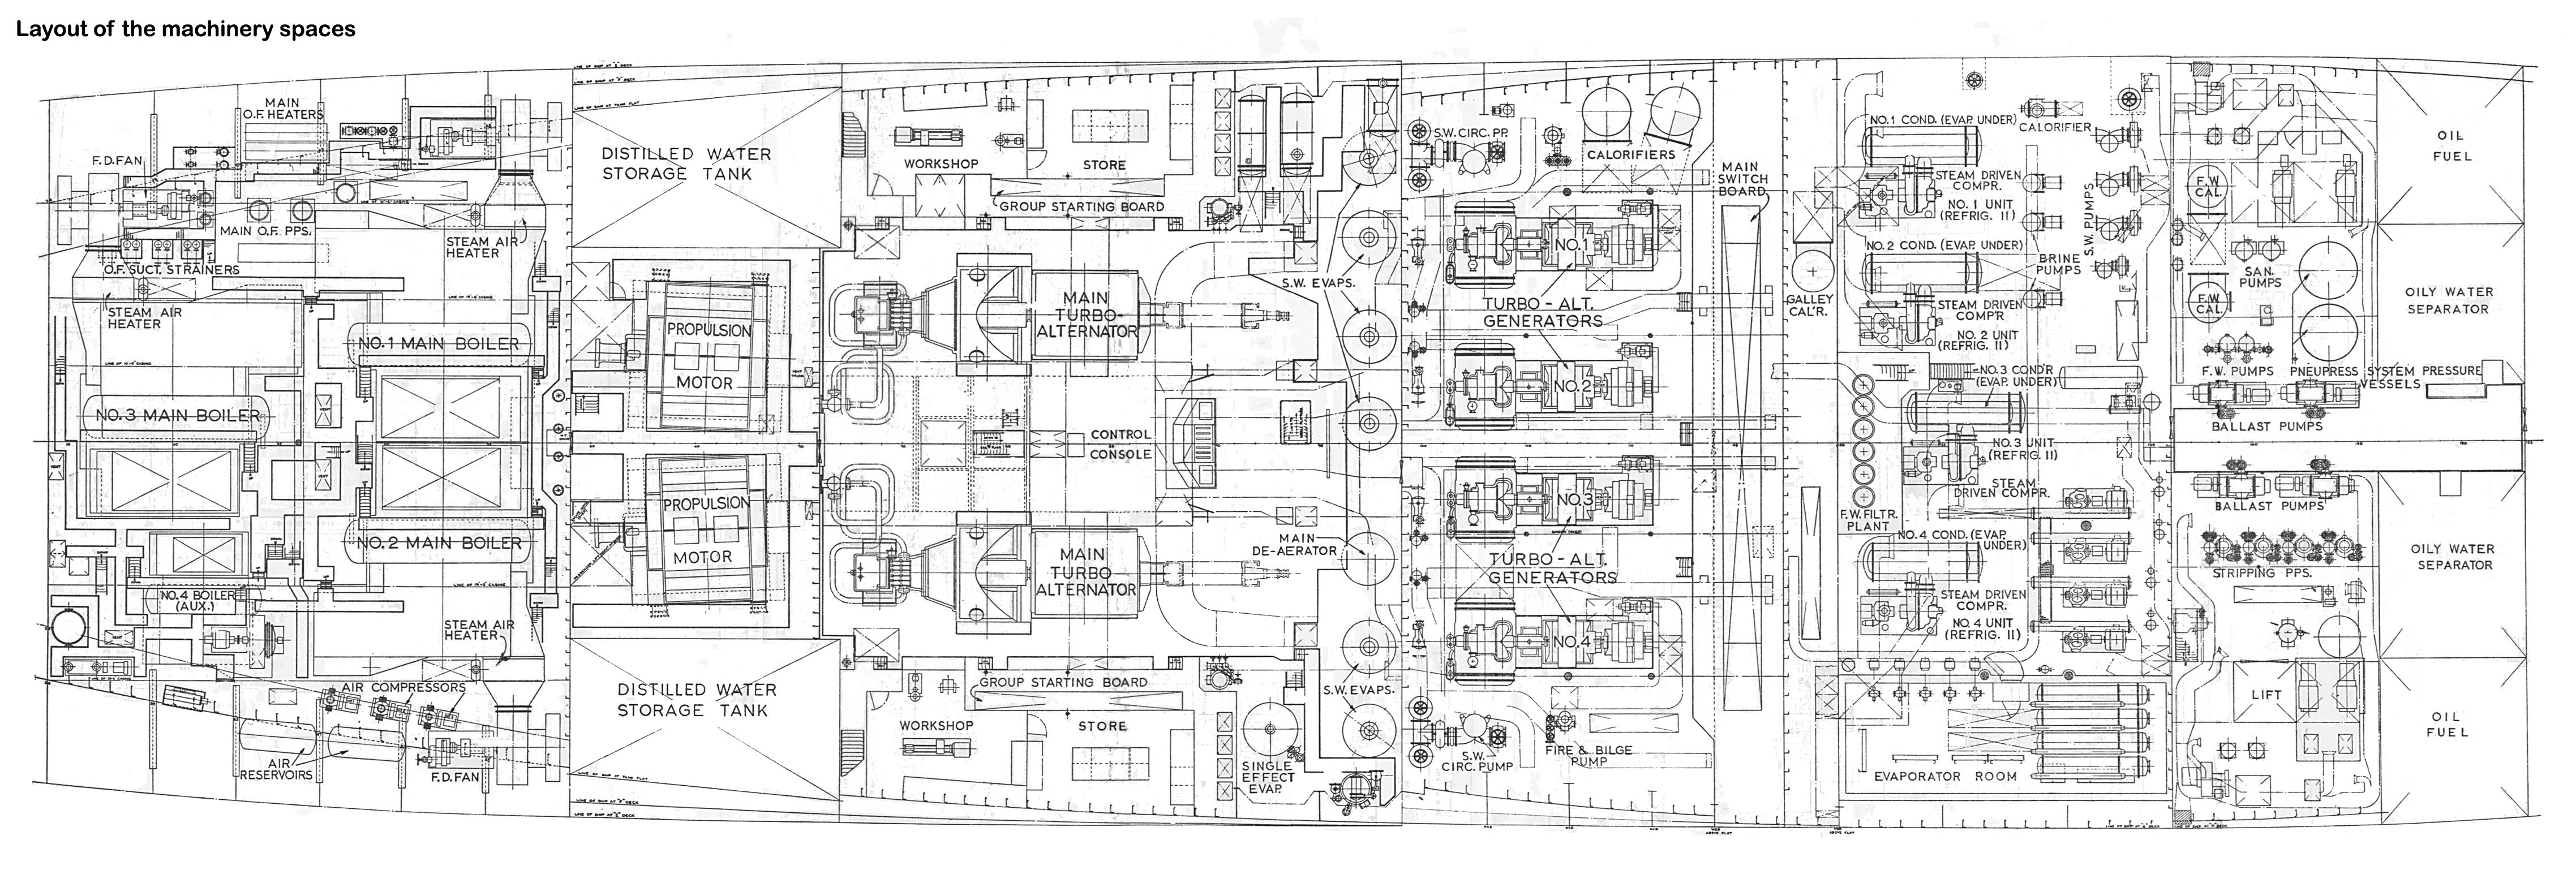 ss canberra main machinery spaces ship schematics. Black Bedroom Furniture Sets. Home Design Ideas